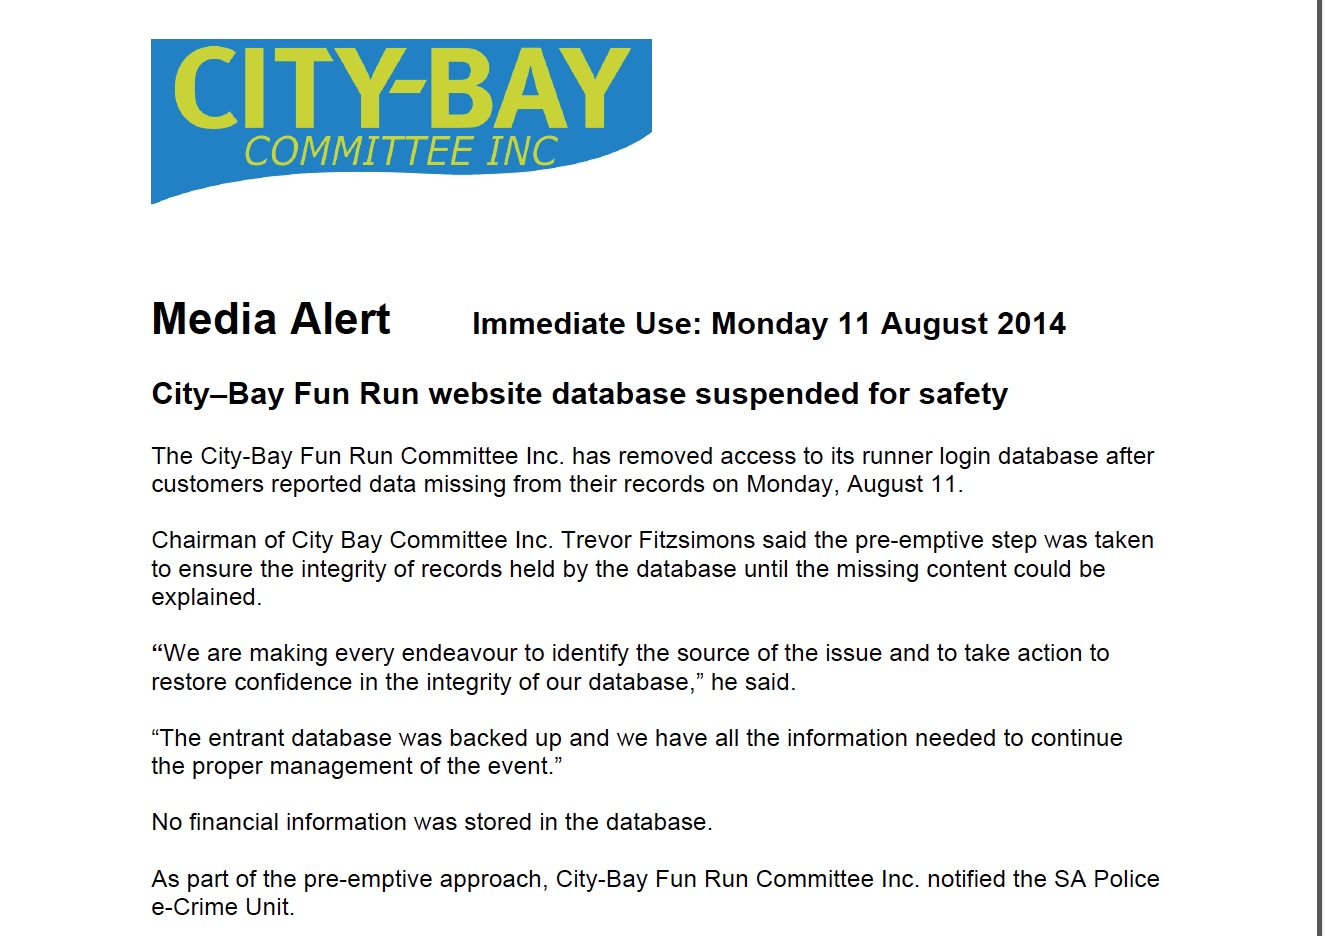 city bay media alert - it